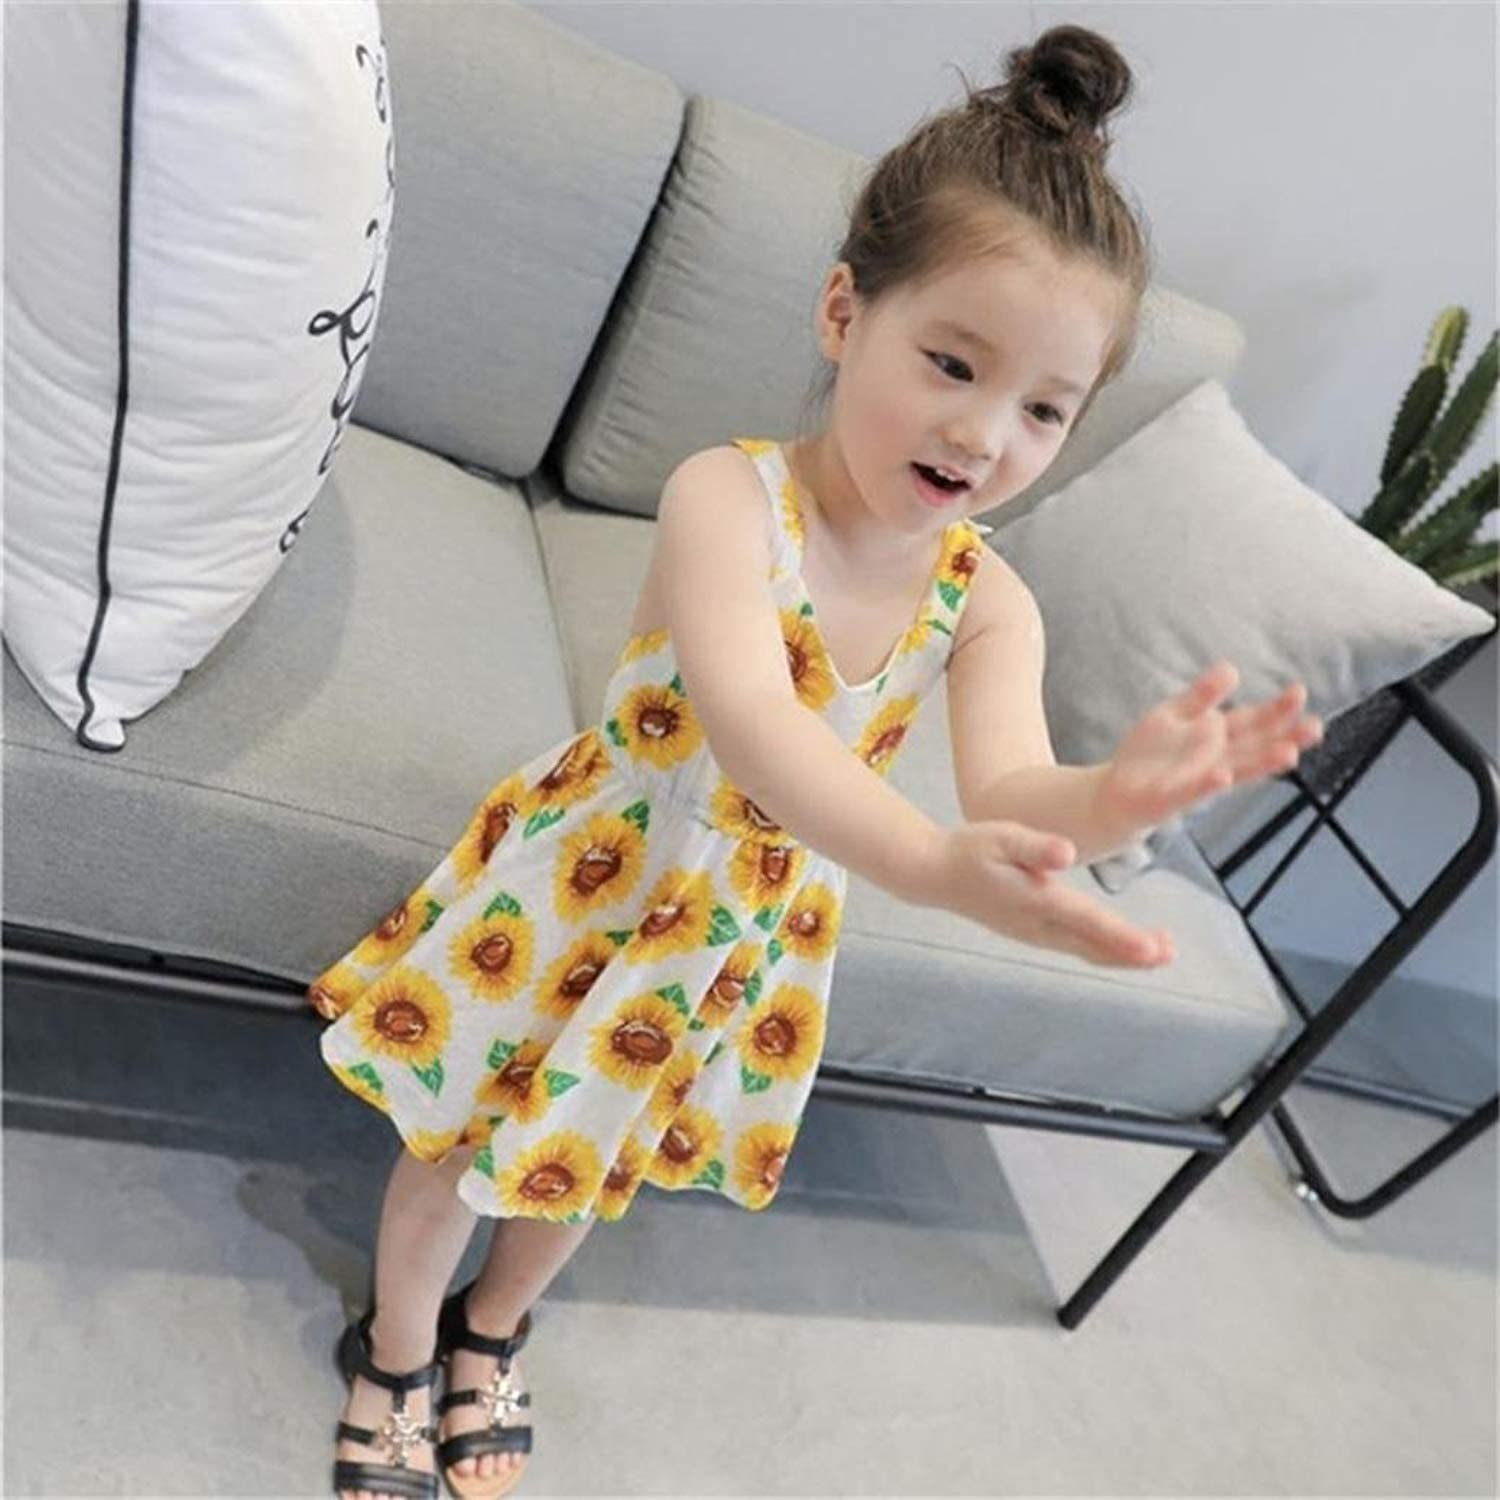 YOUNGER TREE 2018 Summer Casual Little Girl Sunflower Print Backless Sleeveless Dress Sundress Clothes for Kids Toddler Baby